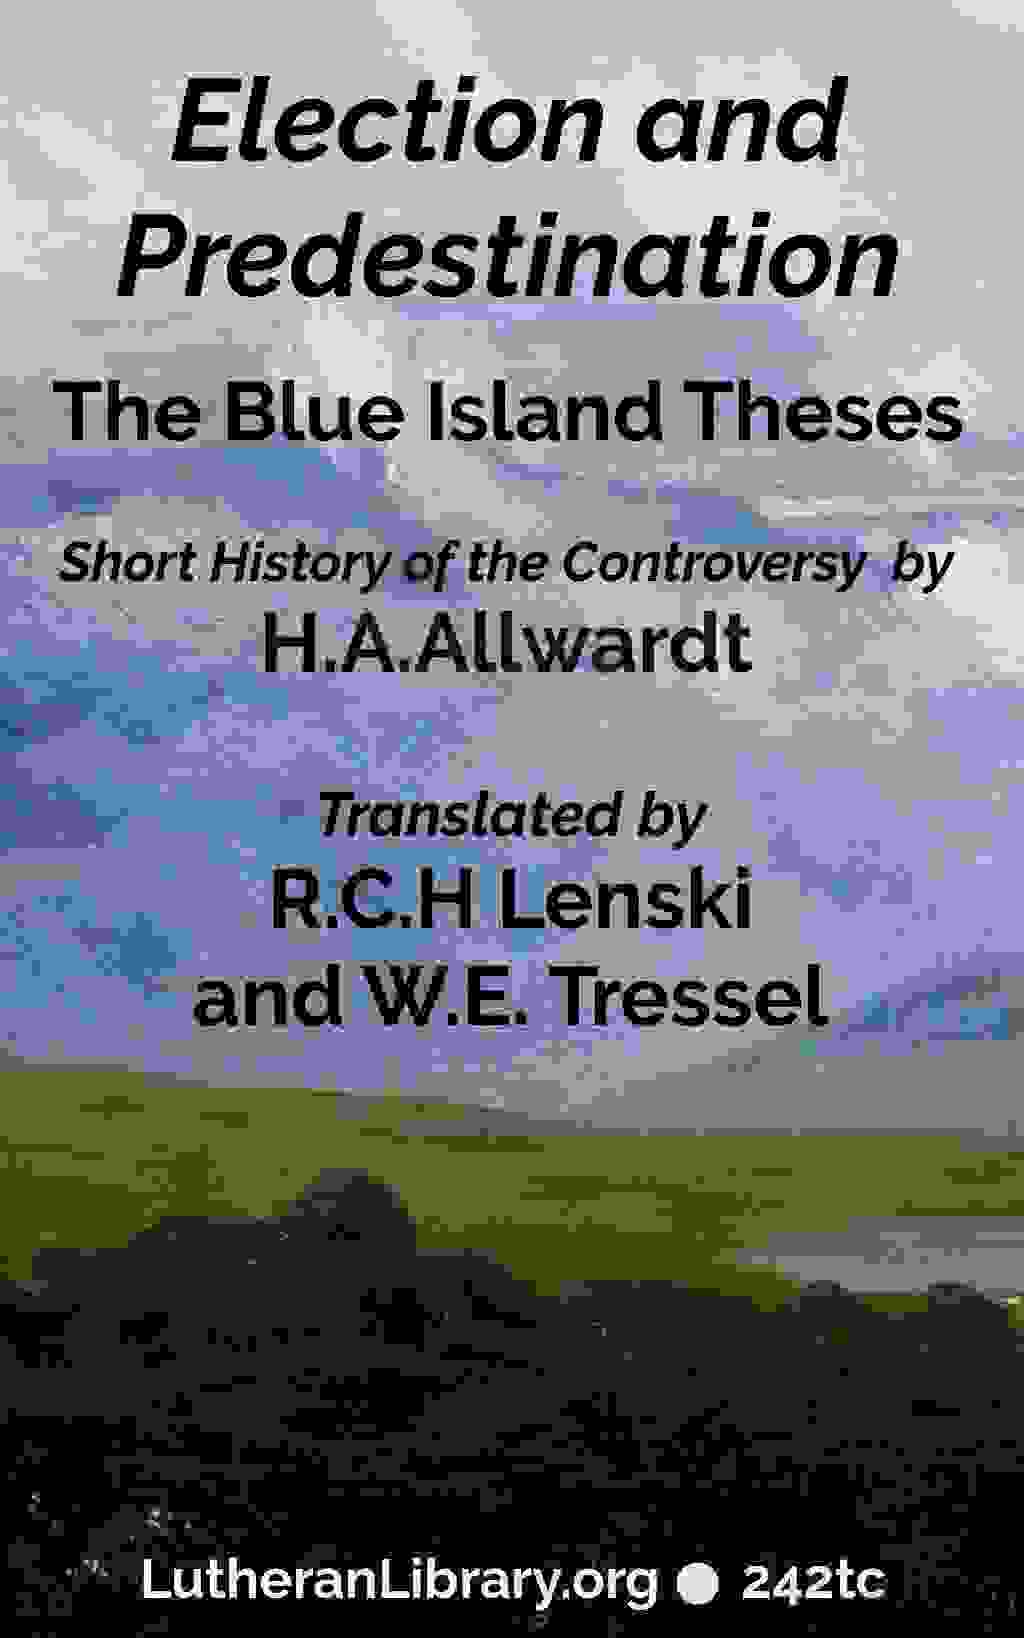 Election and Predestination: The Blue Island Theses by Allwardt, Lenski and Tressel